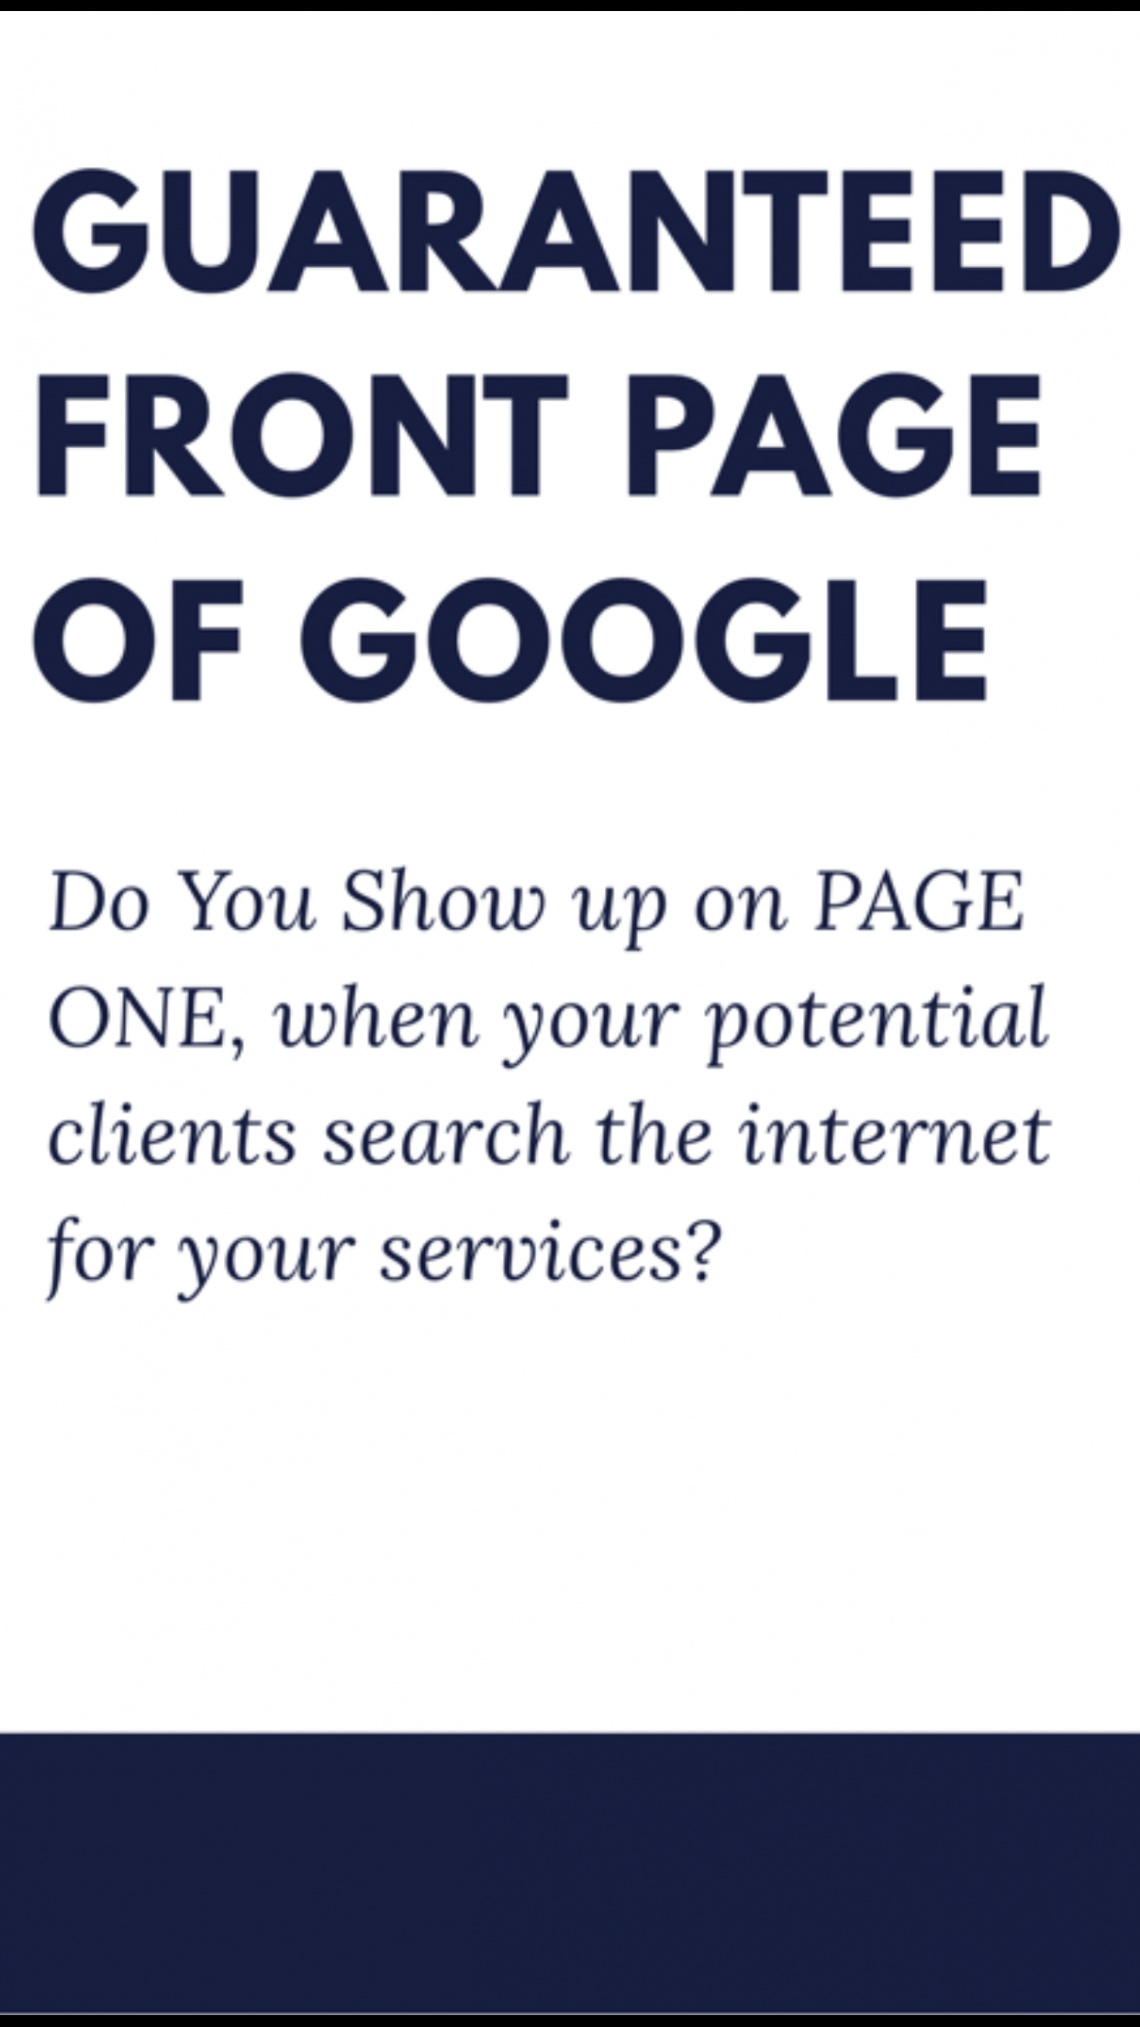 434.939.7366 How to Rank on Page One of Google